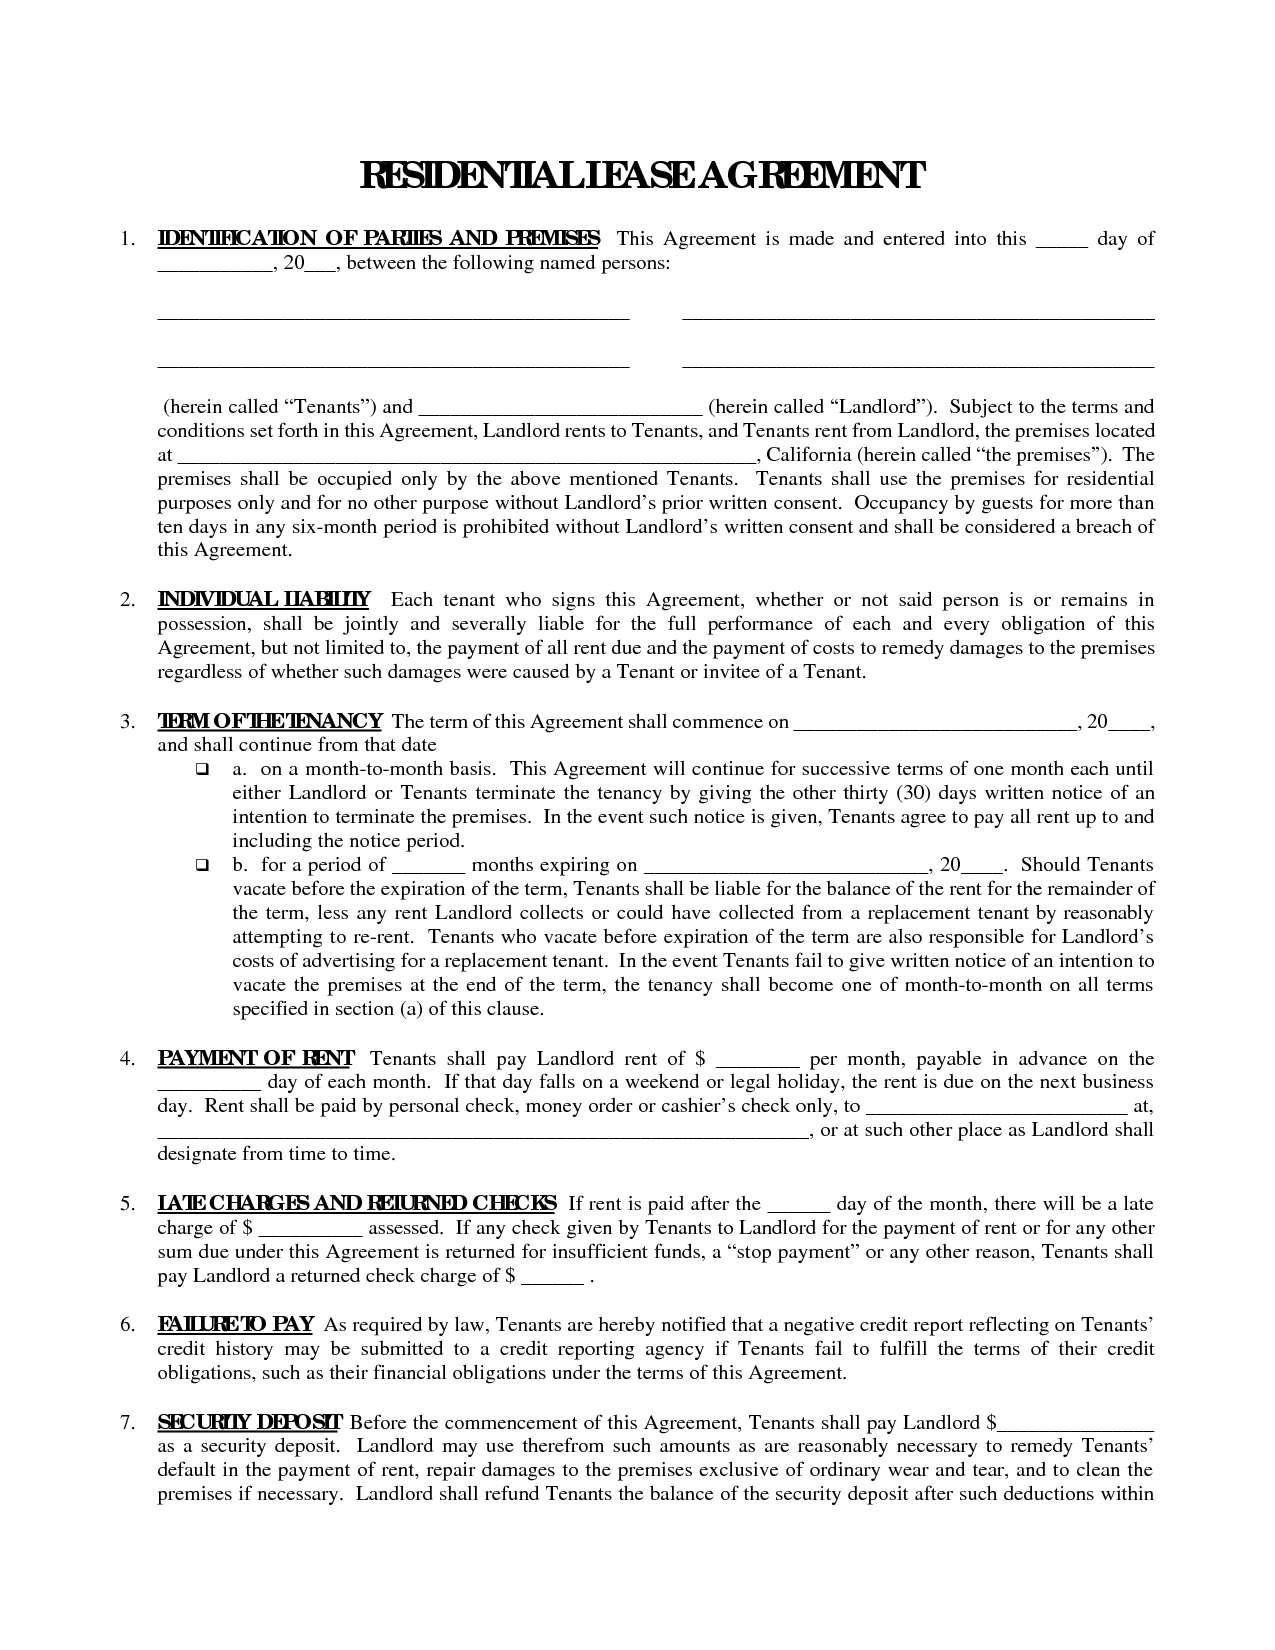 Printable Residential Free House Lease Agreement   Residential Lease - Free Printable Lease Agreement Forms